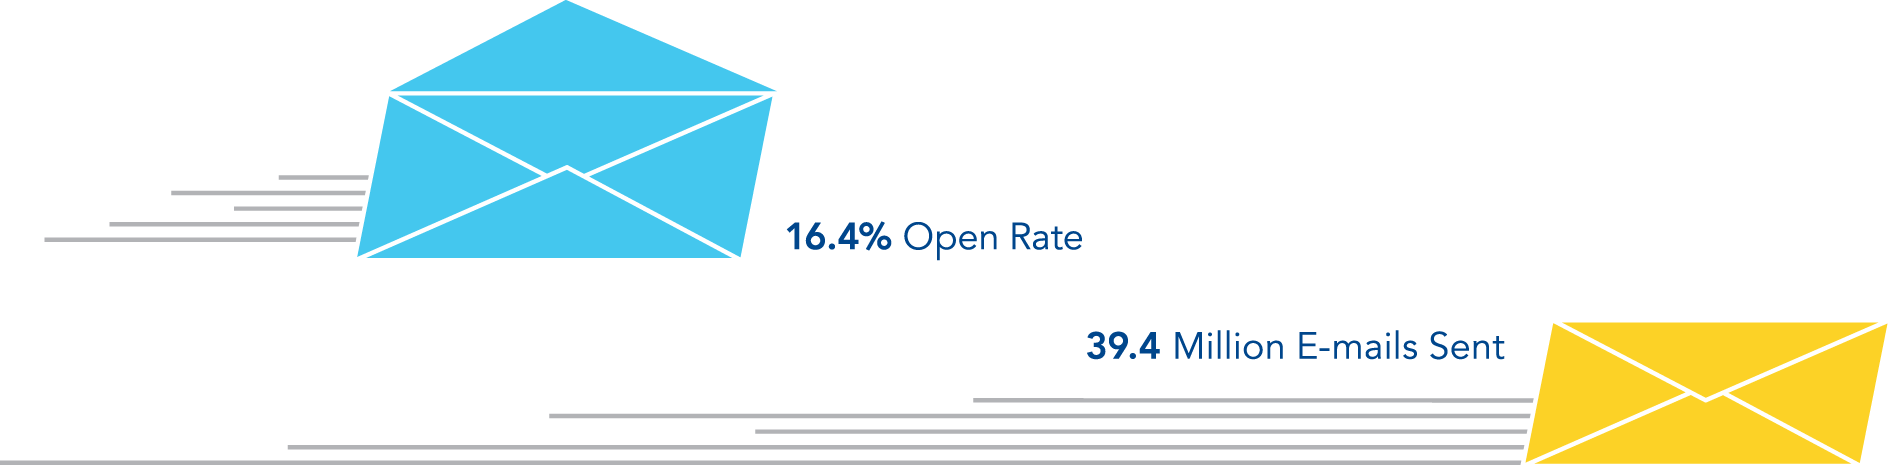 2014-Sent-Open-Rate